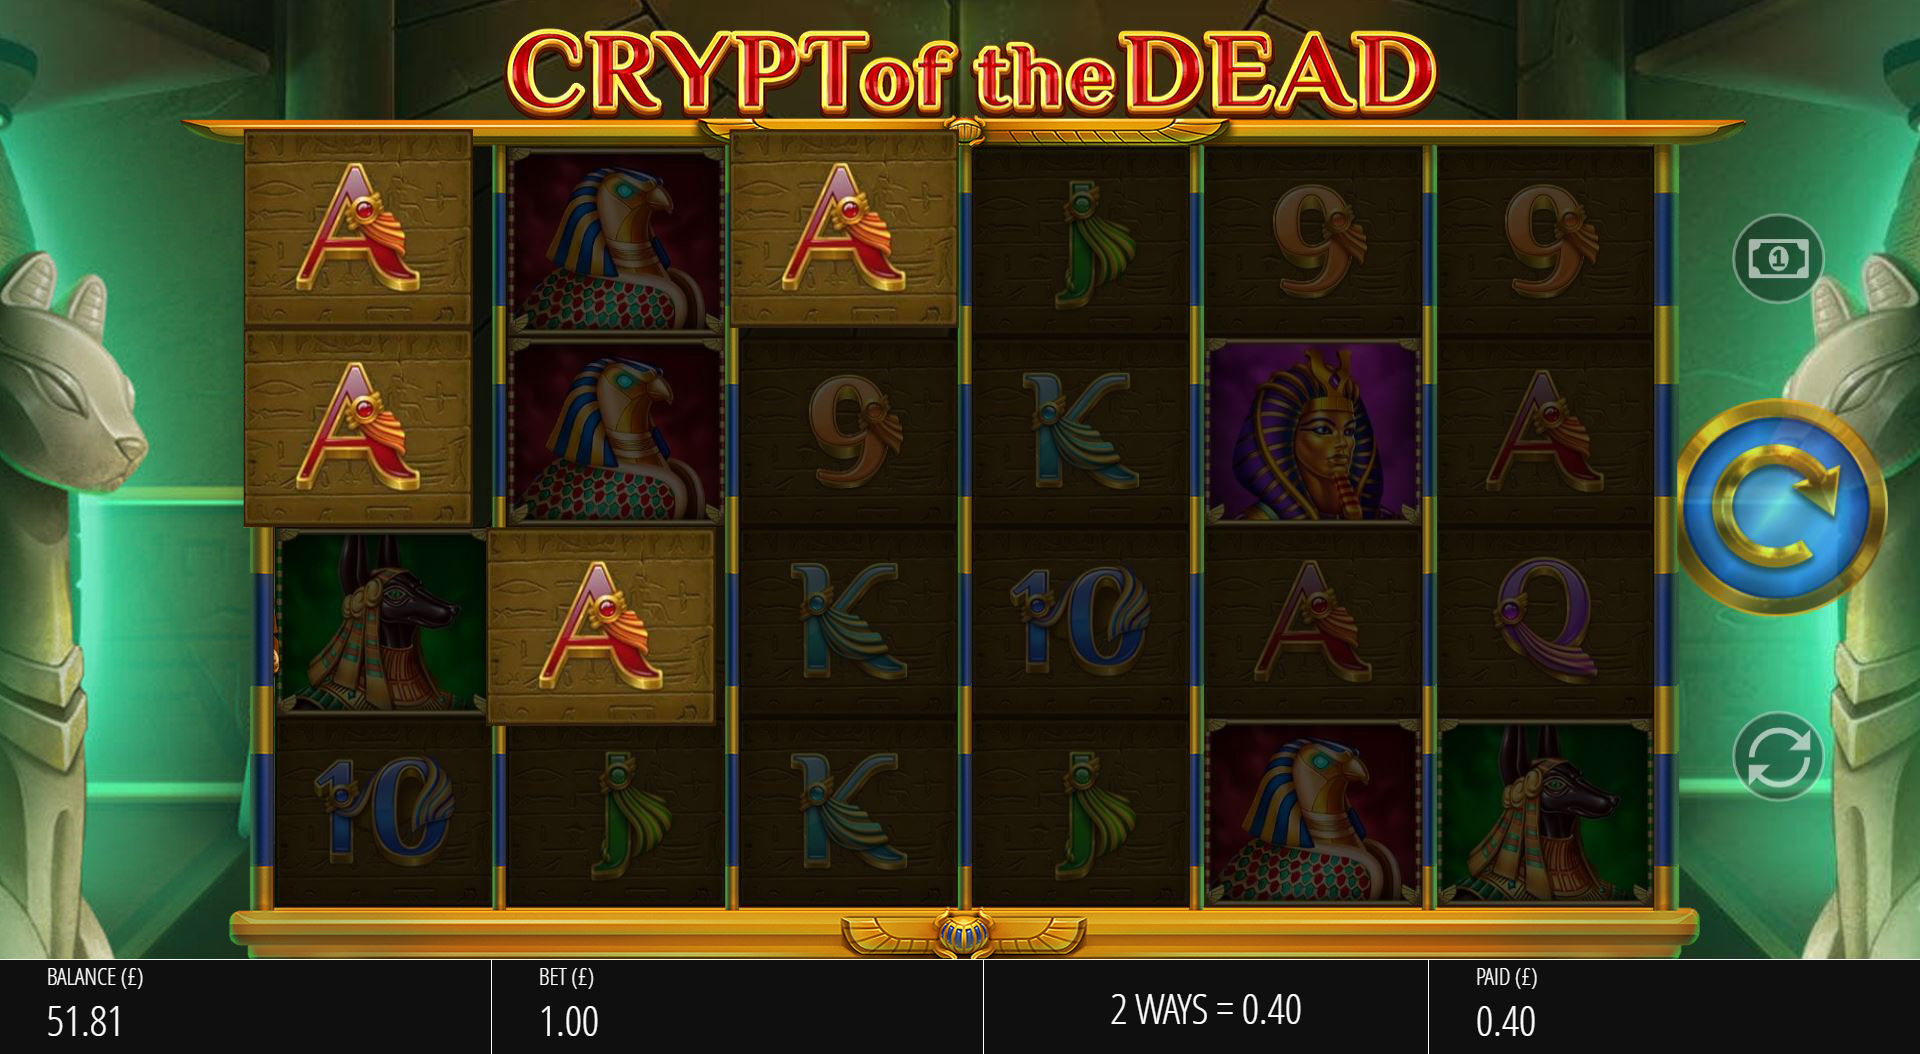 Crypt of the Dead - Base Win